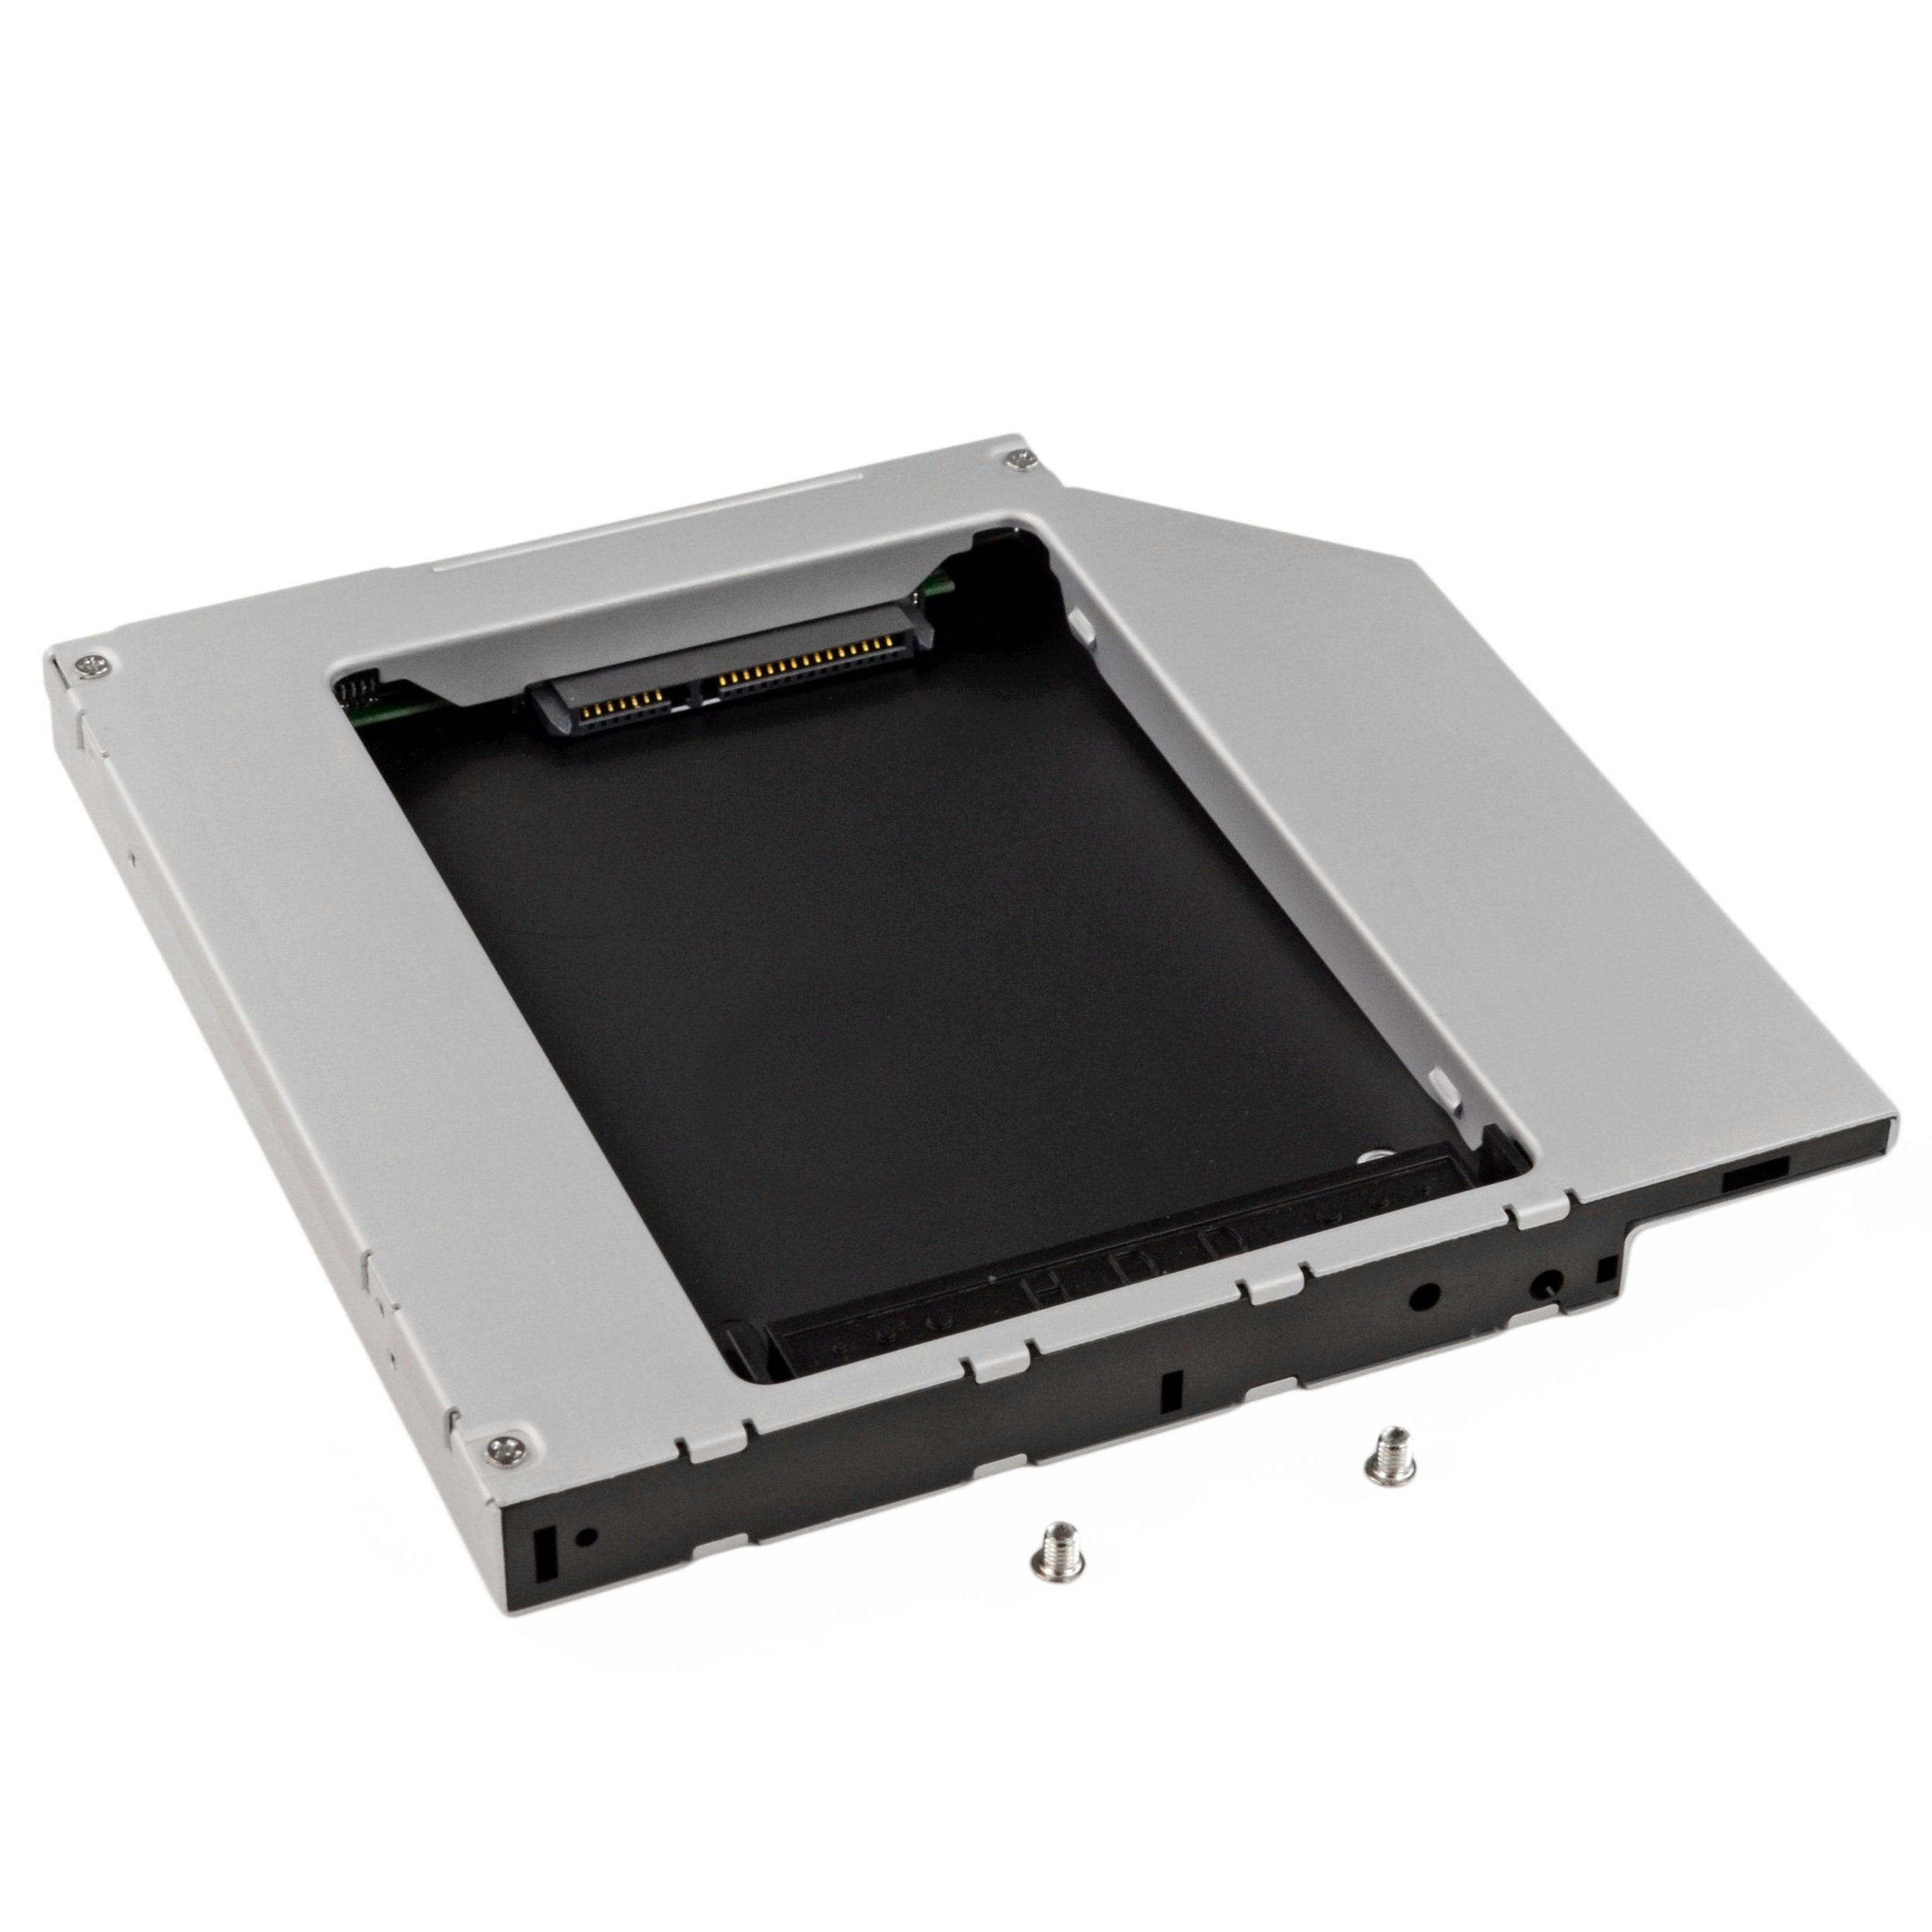 iMac & Mac mini Dual Drive Enclosure 이미지